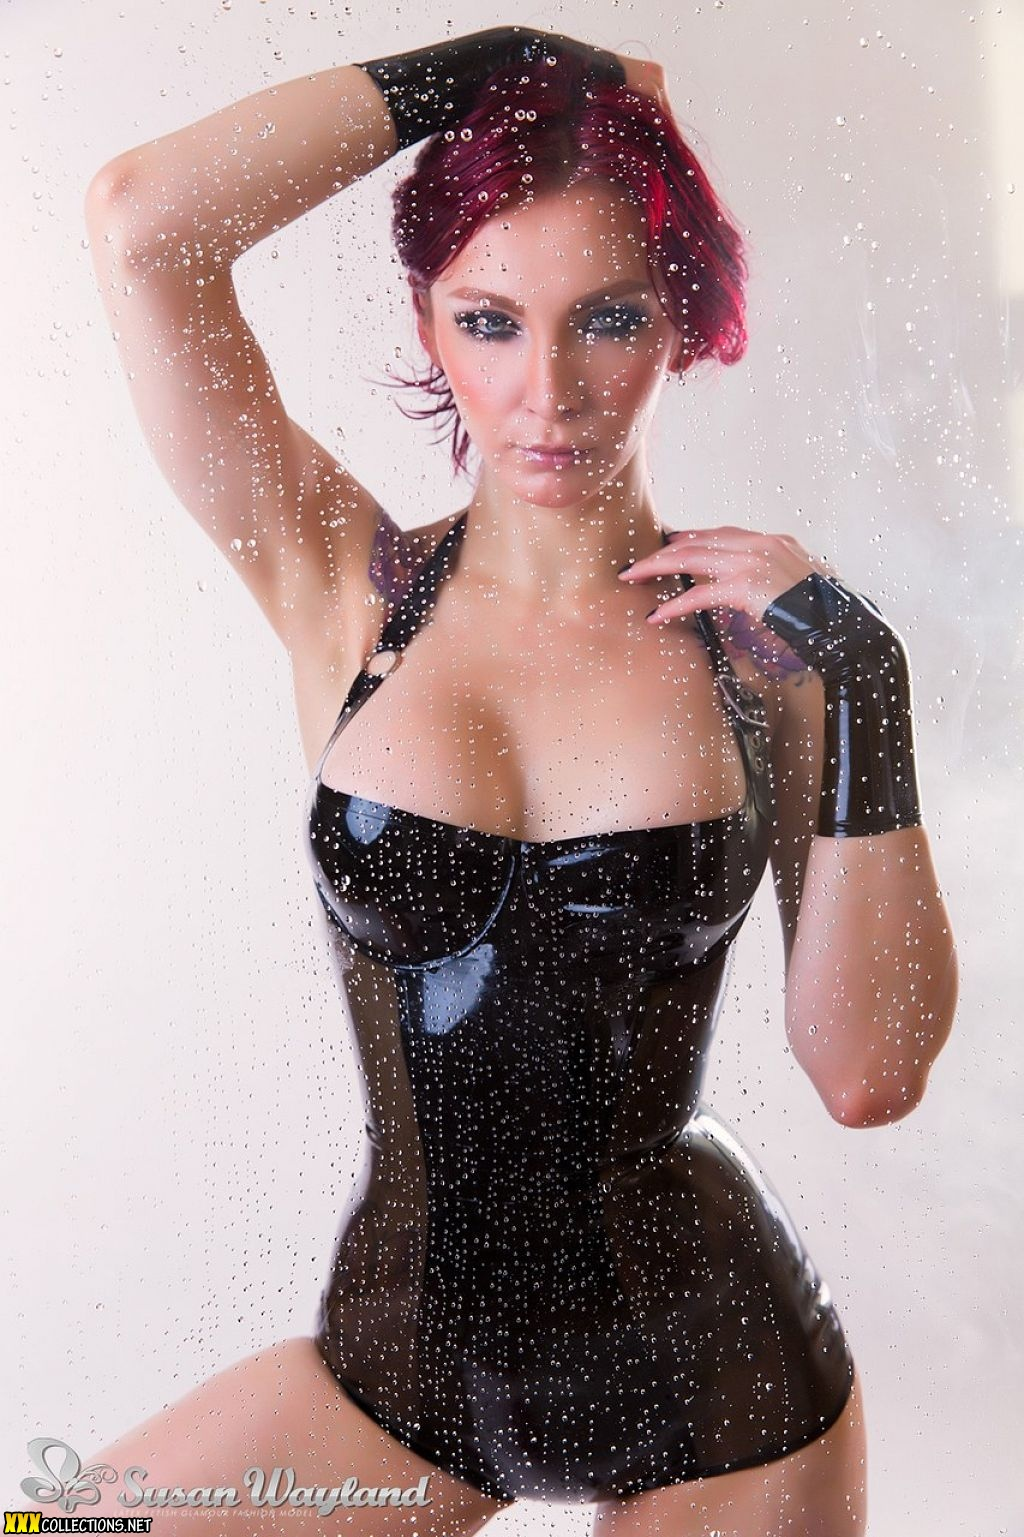 Pvc erotic picture pack download